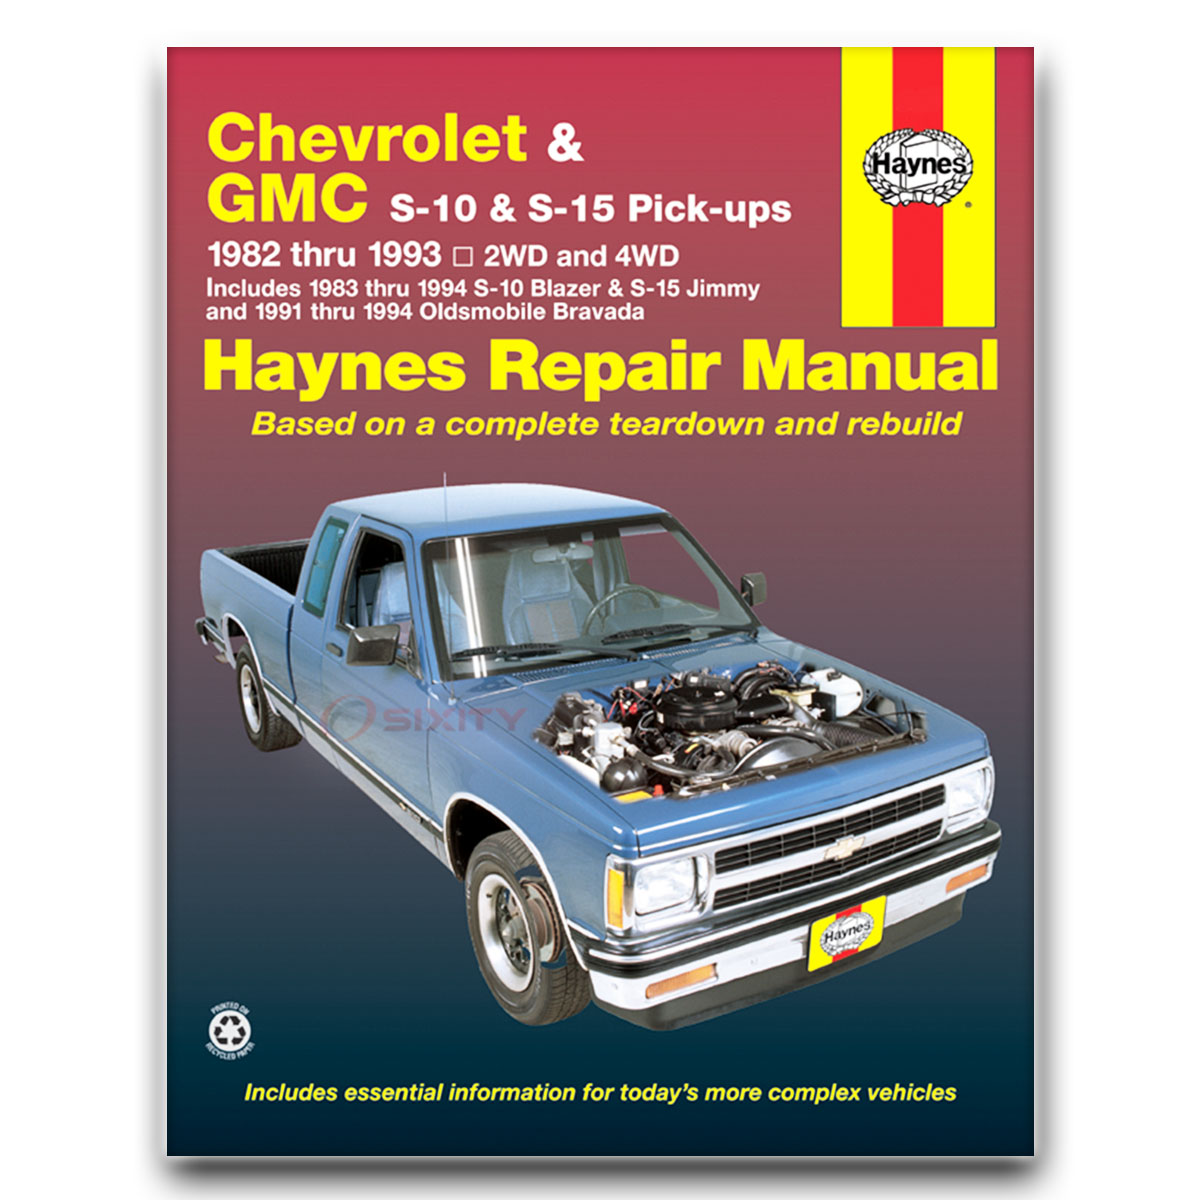 Haynes Repair Manual 24070 for Chevrolet S10 GMC S15 82-93 Shop Service rx